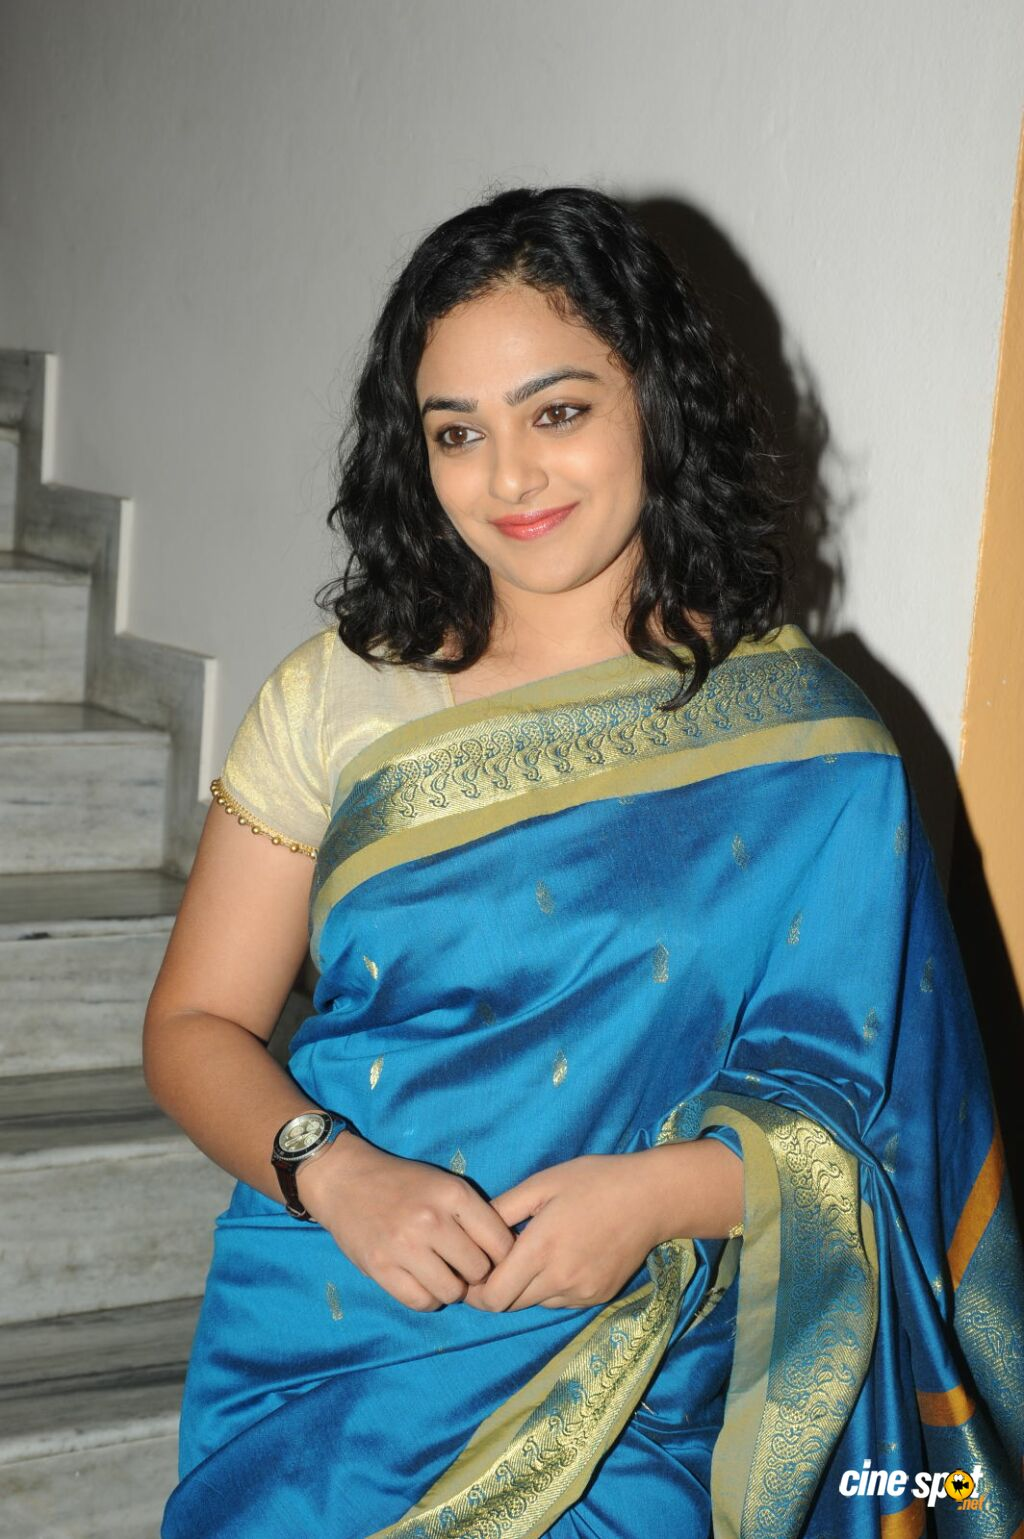 Actress nitya menon nude n fucking herself look like - 3 8